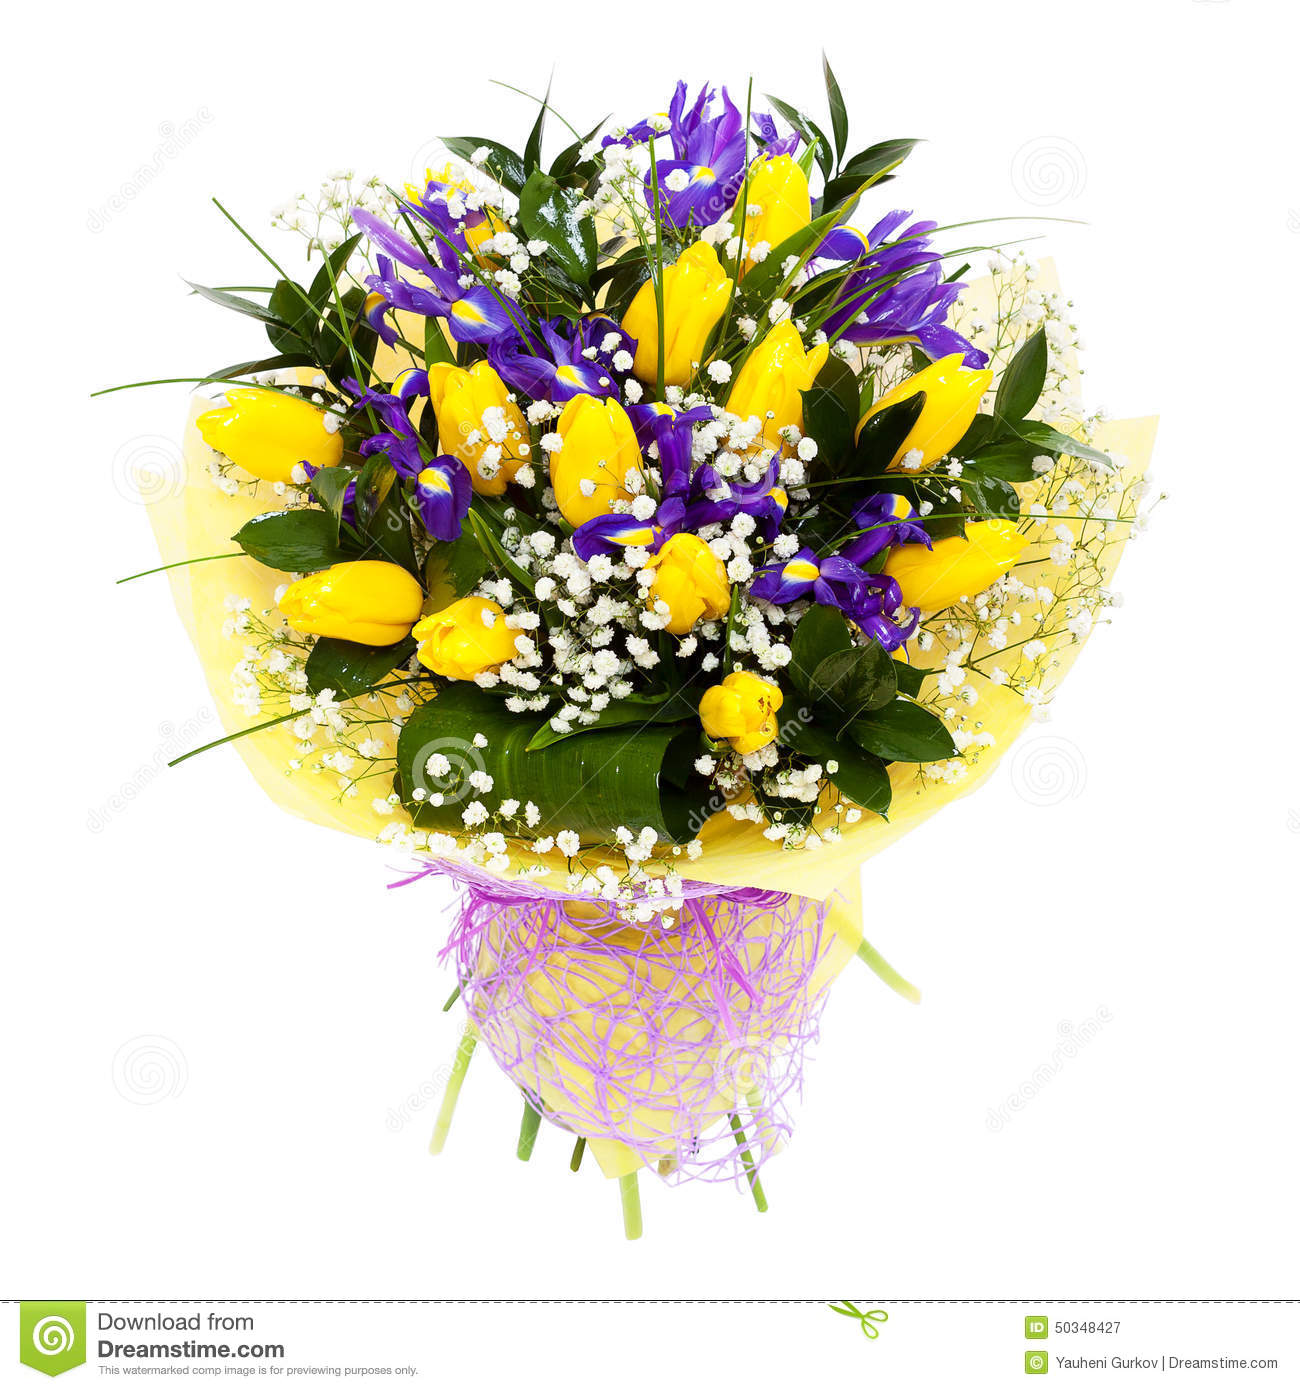 Tulips isolated flower arrangement bouquet stock image image of tulips isolated flower arrangement bouquet mightylinksfo